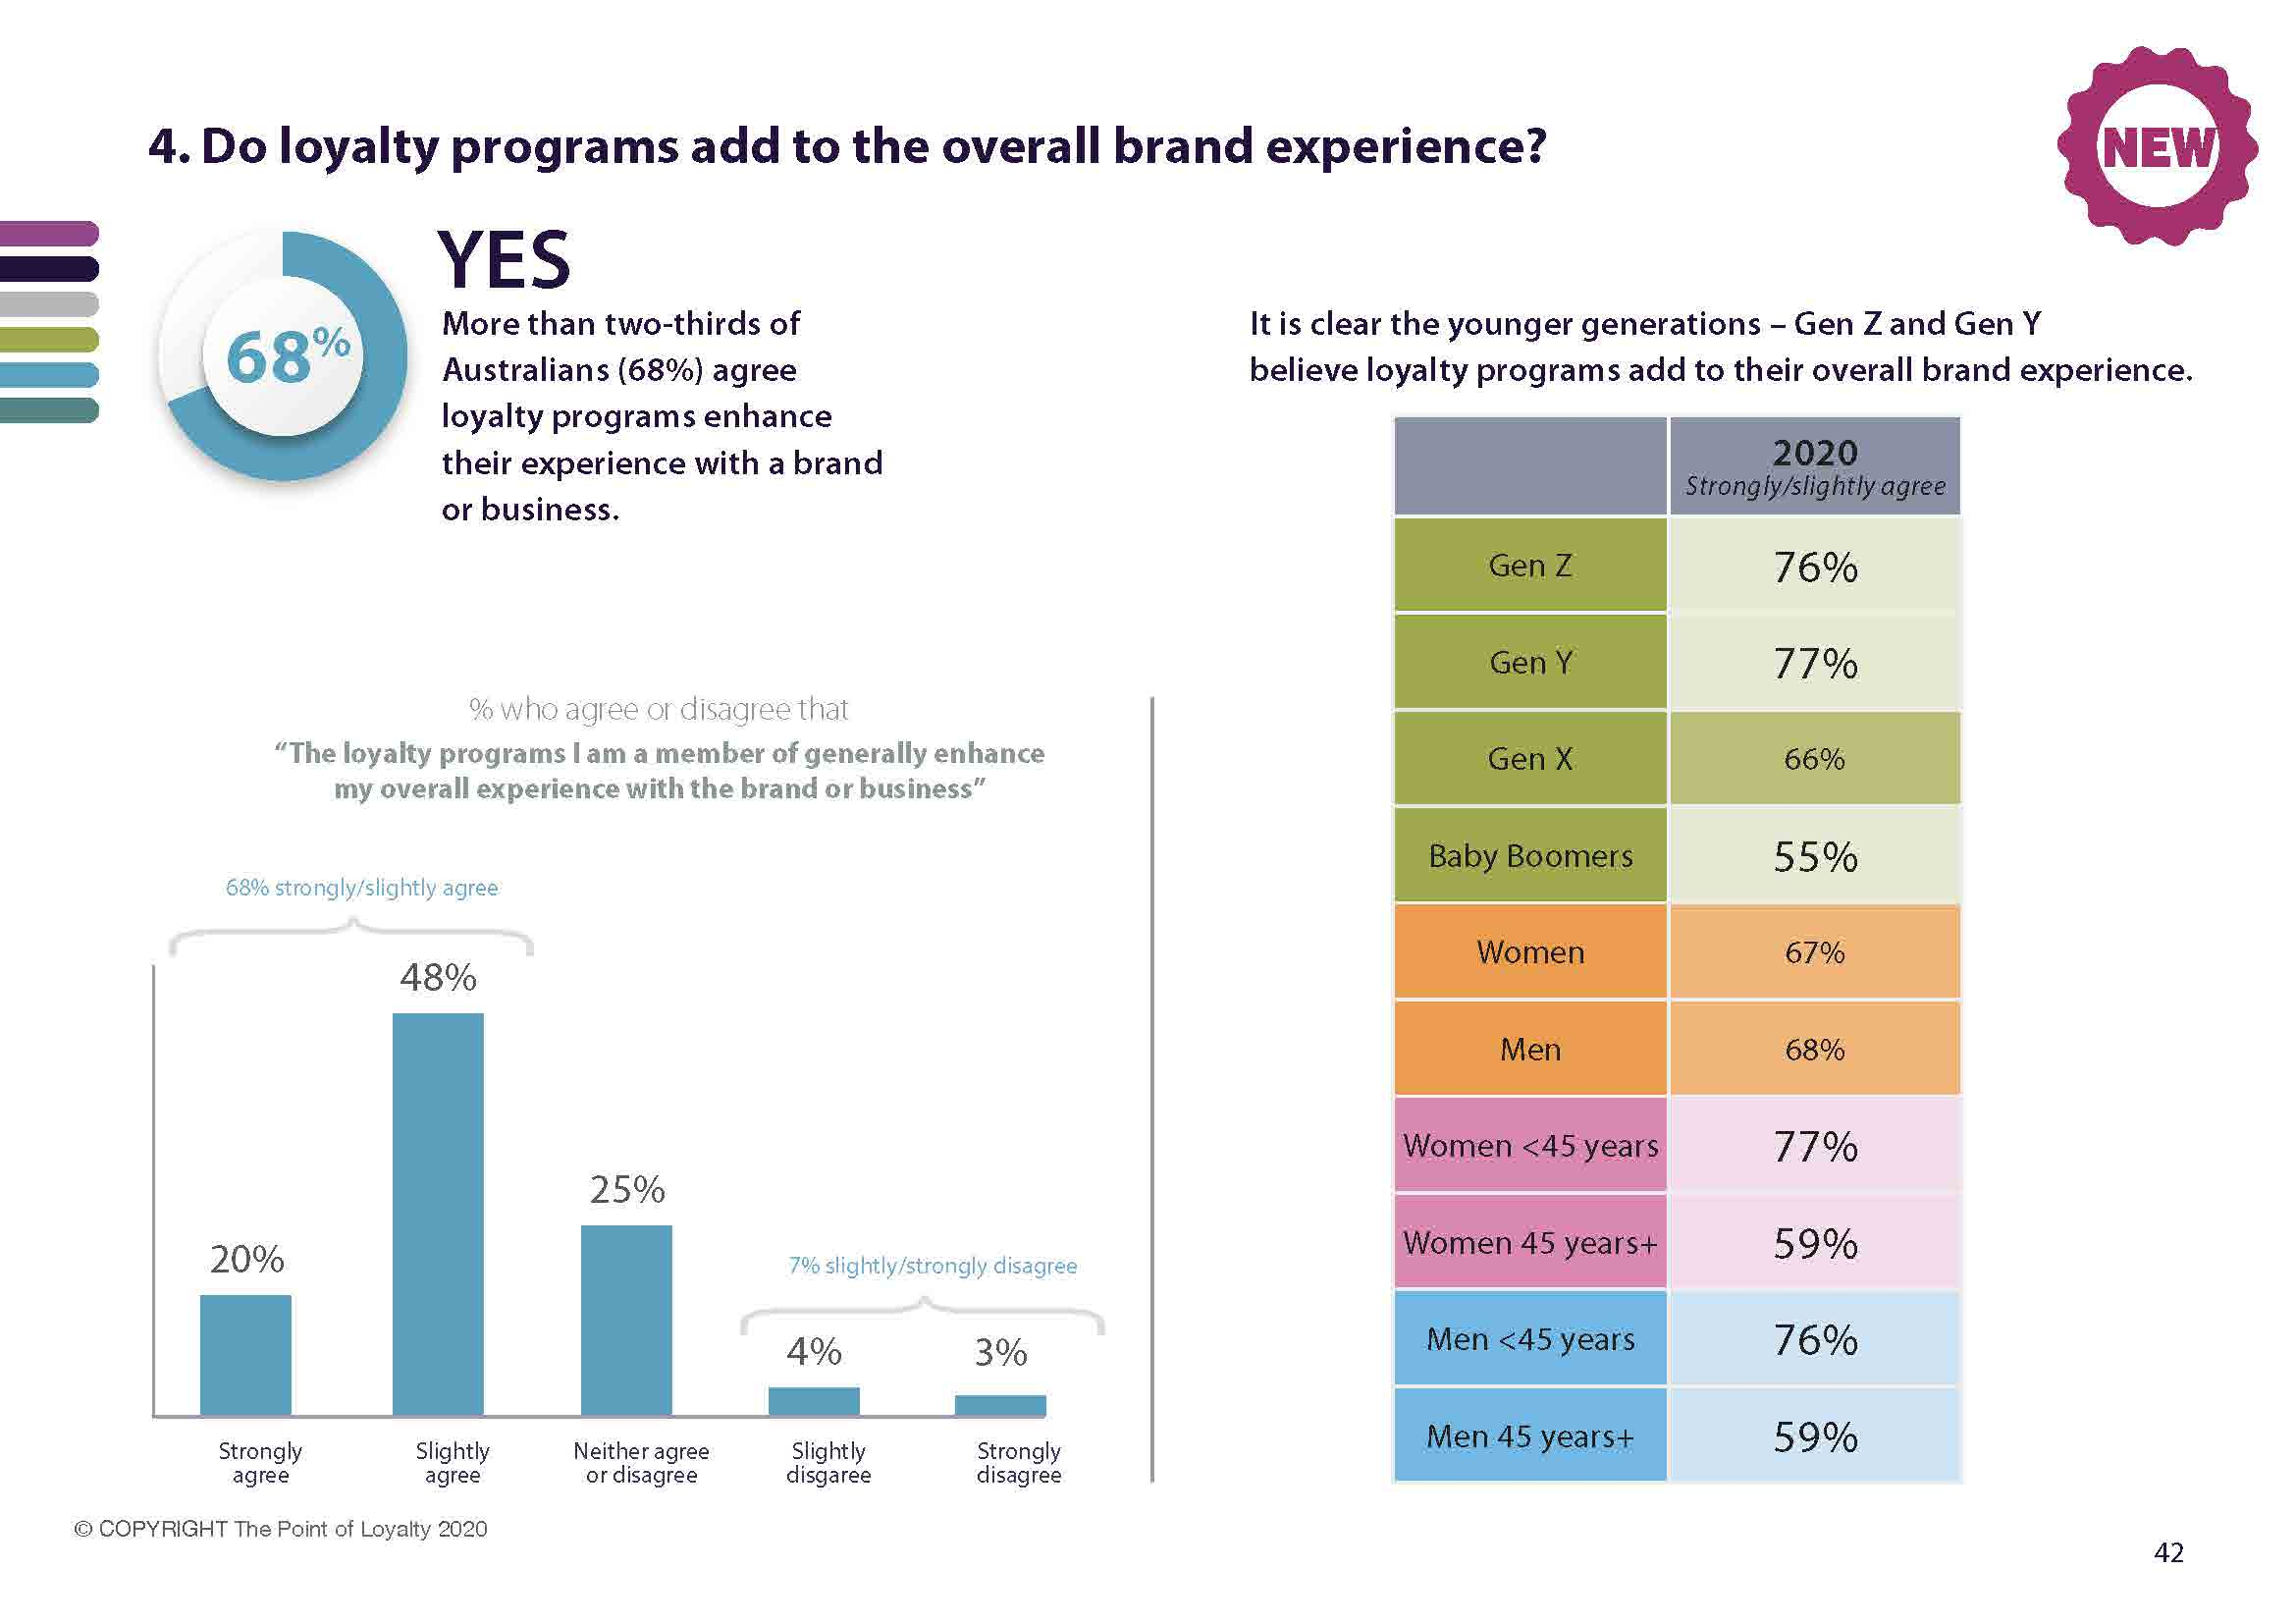 68% of loyalty program members agree programs enhance their experience with a brand or business